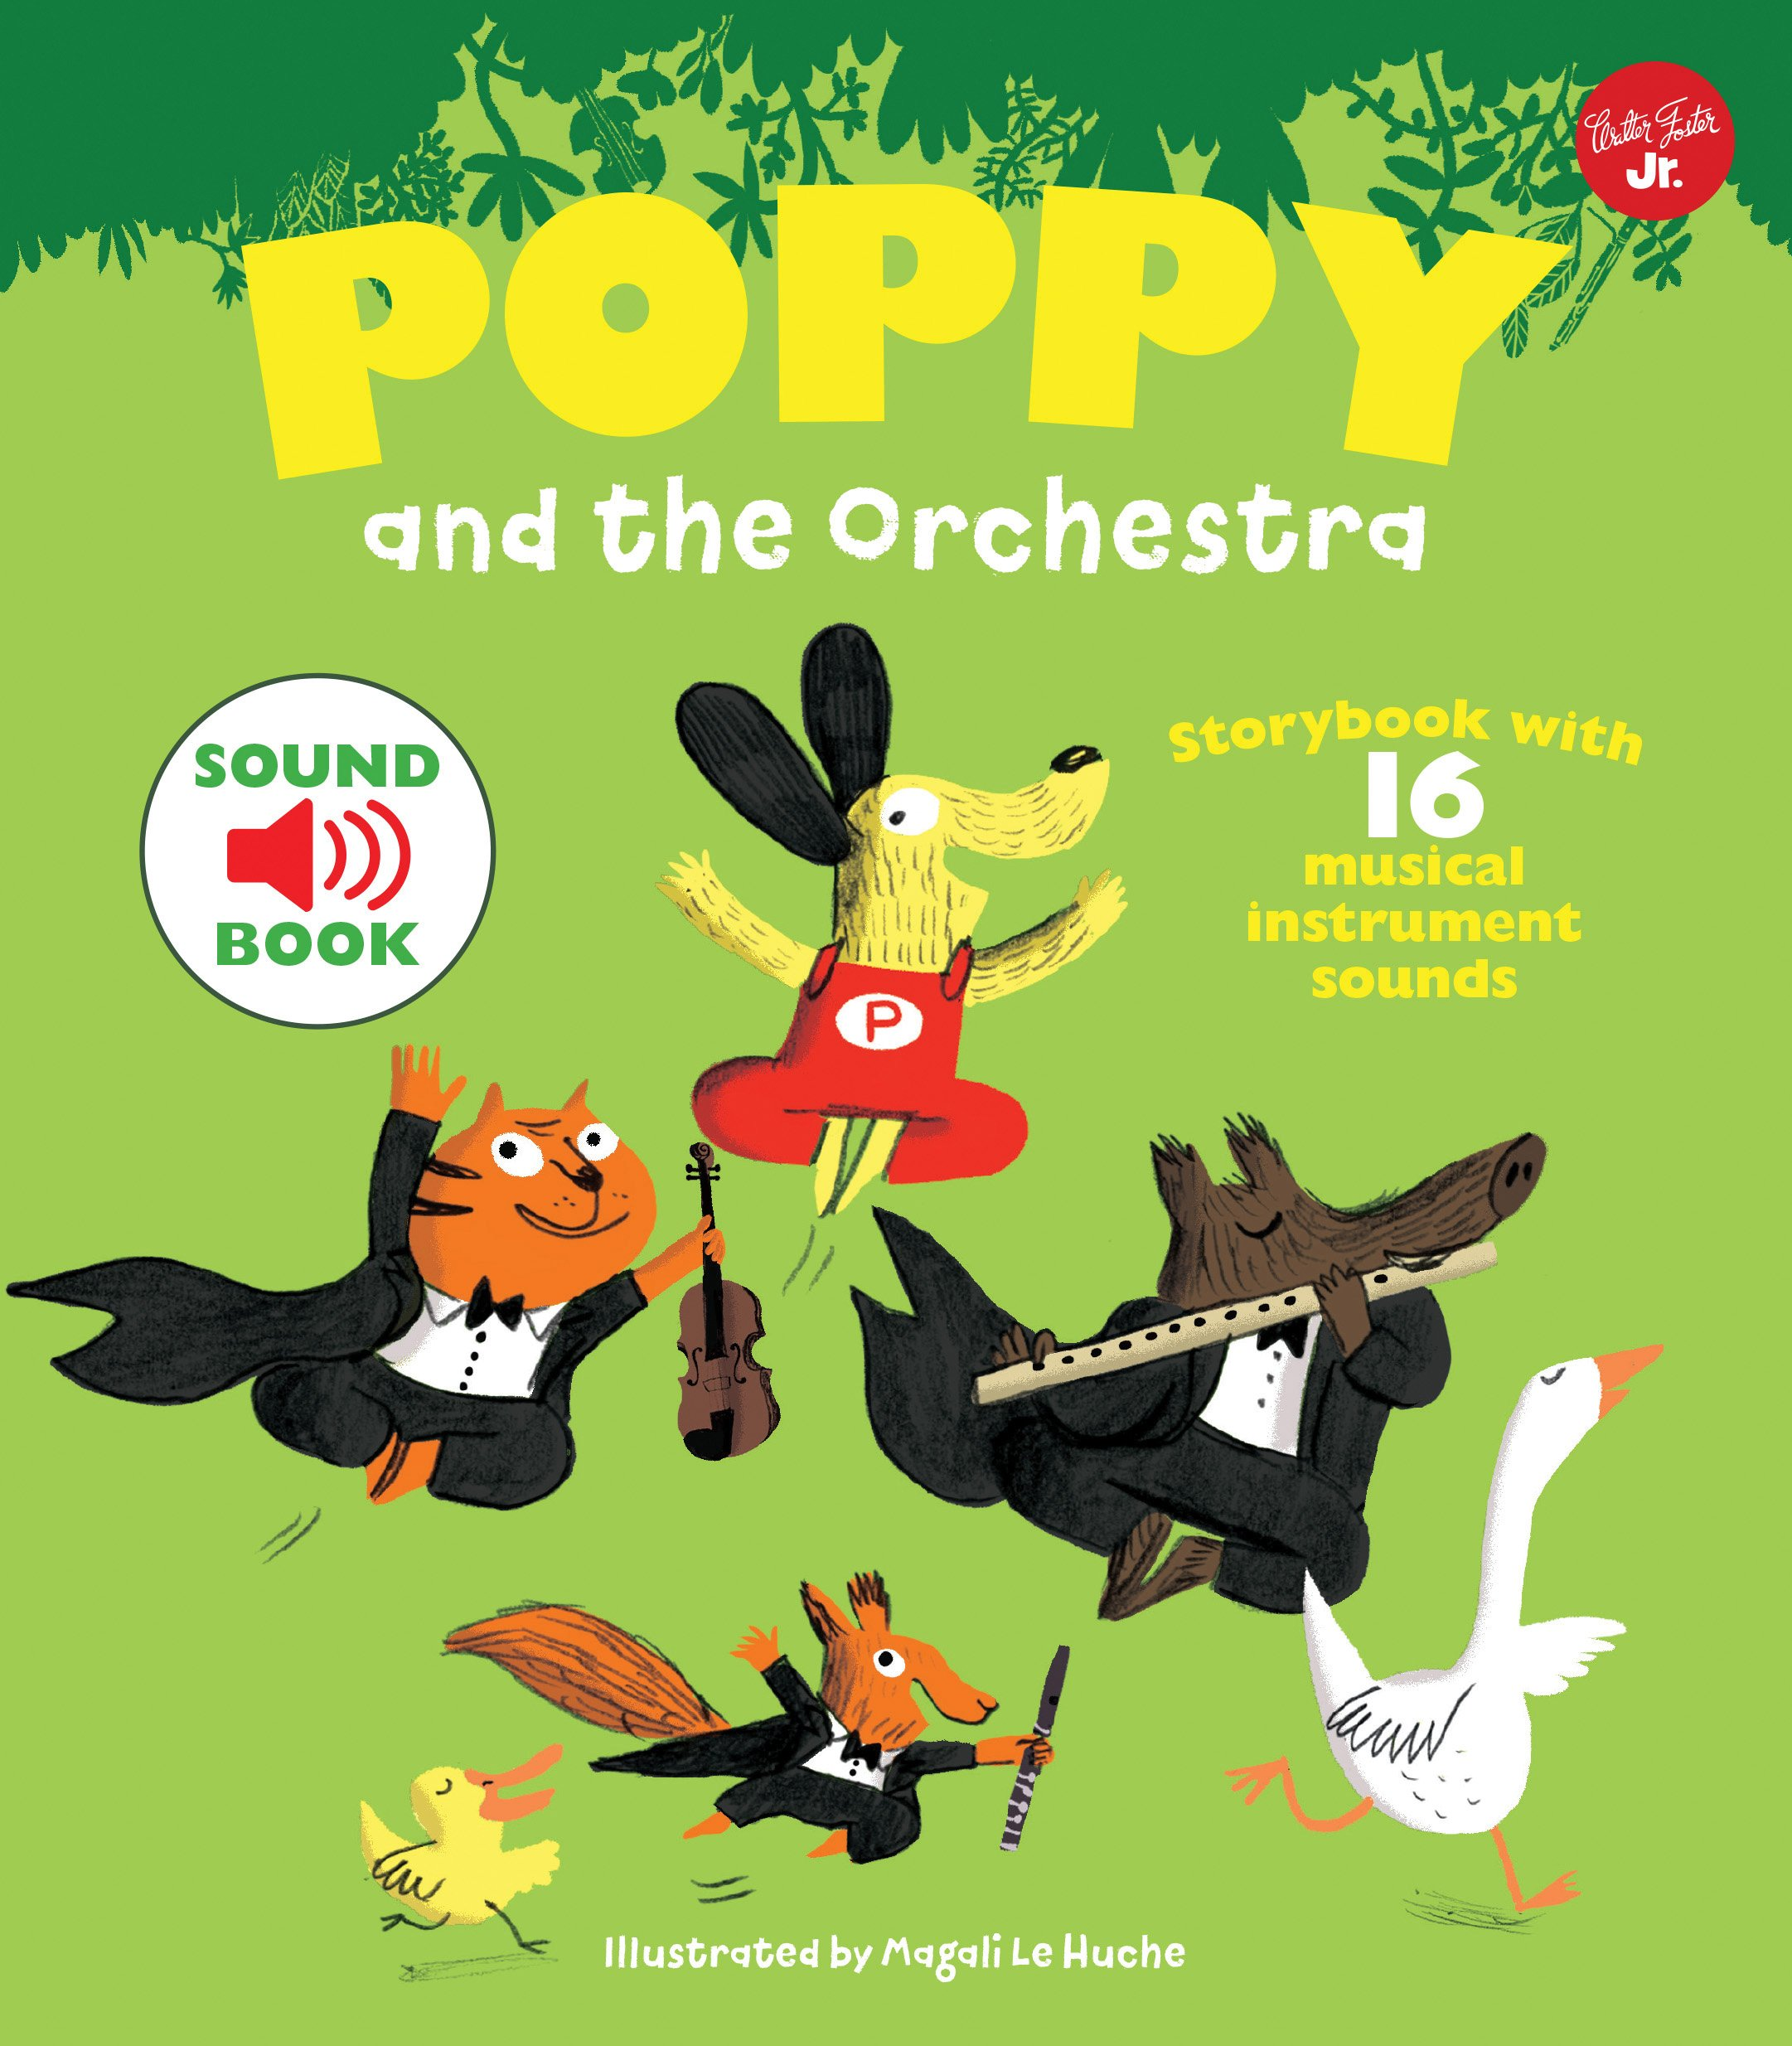 Amazon com: Poppy and the Orchestra: With 16 musical